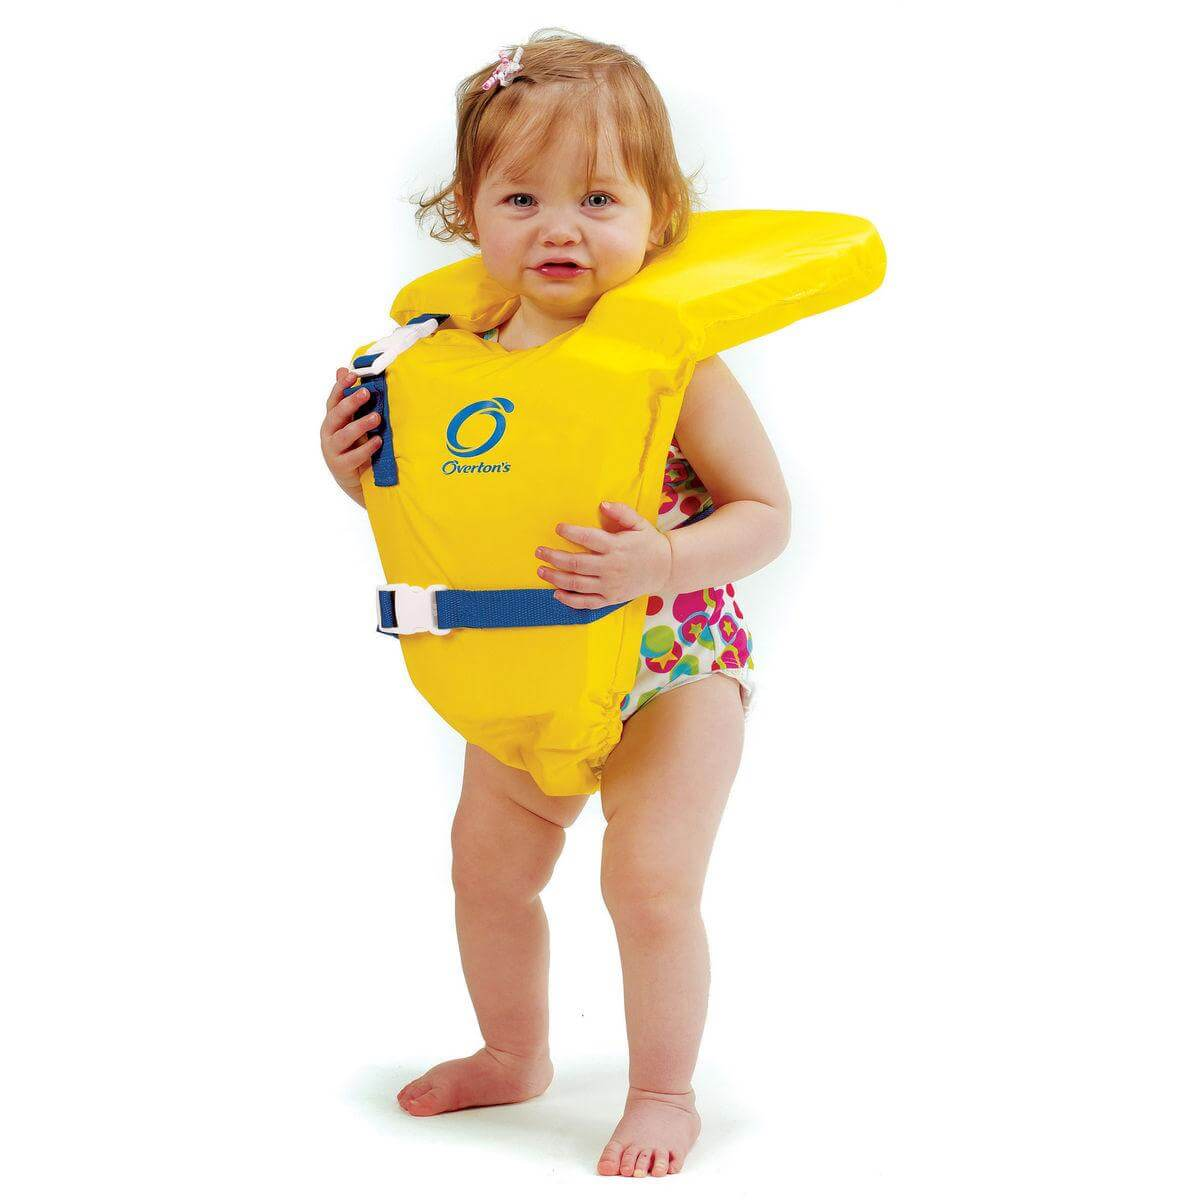 Buyer's Guide For Choosing The Best Life Jackets For Toddlers